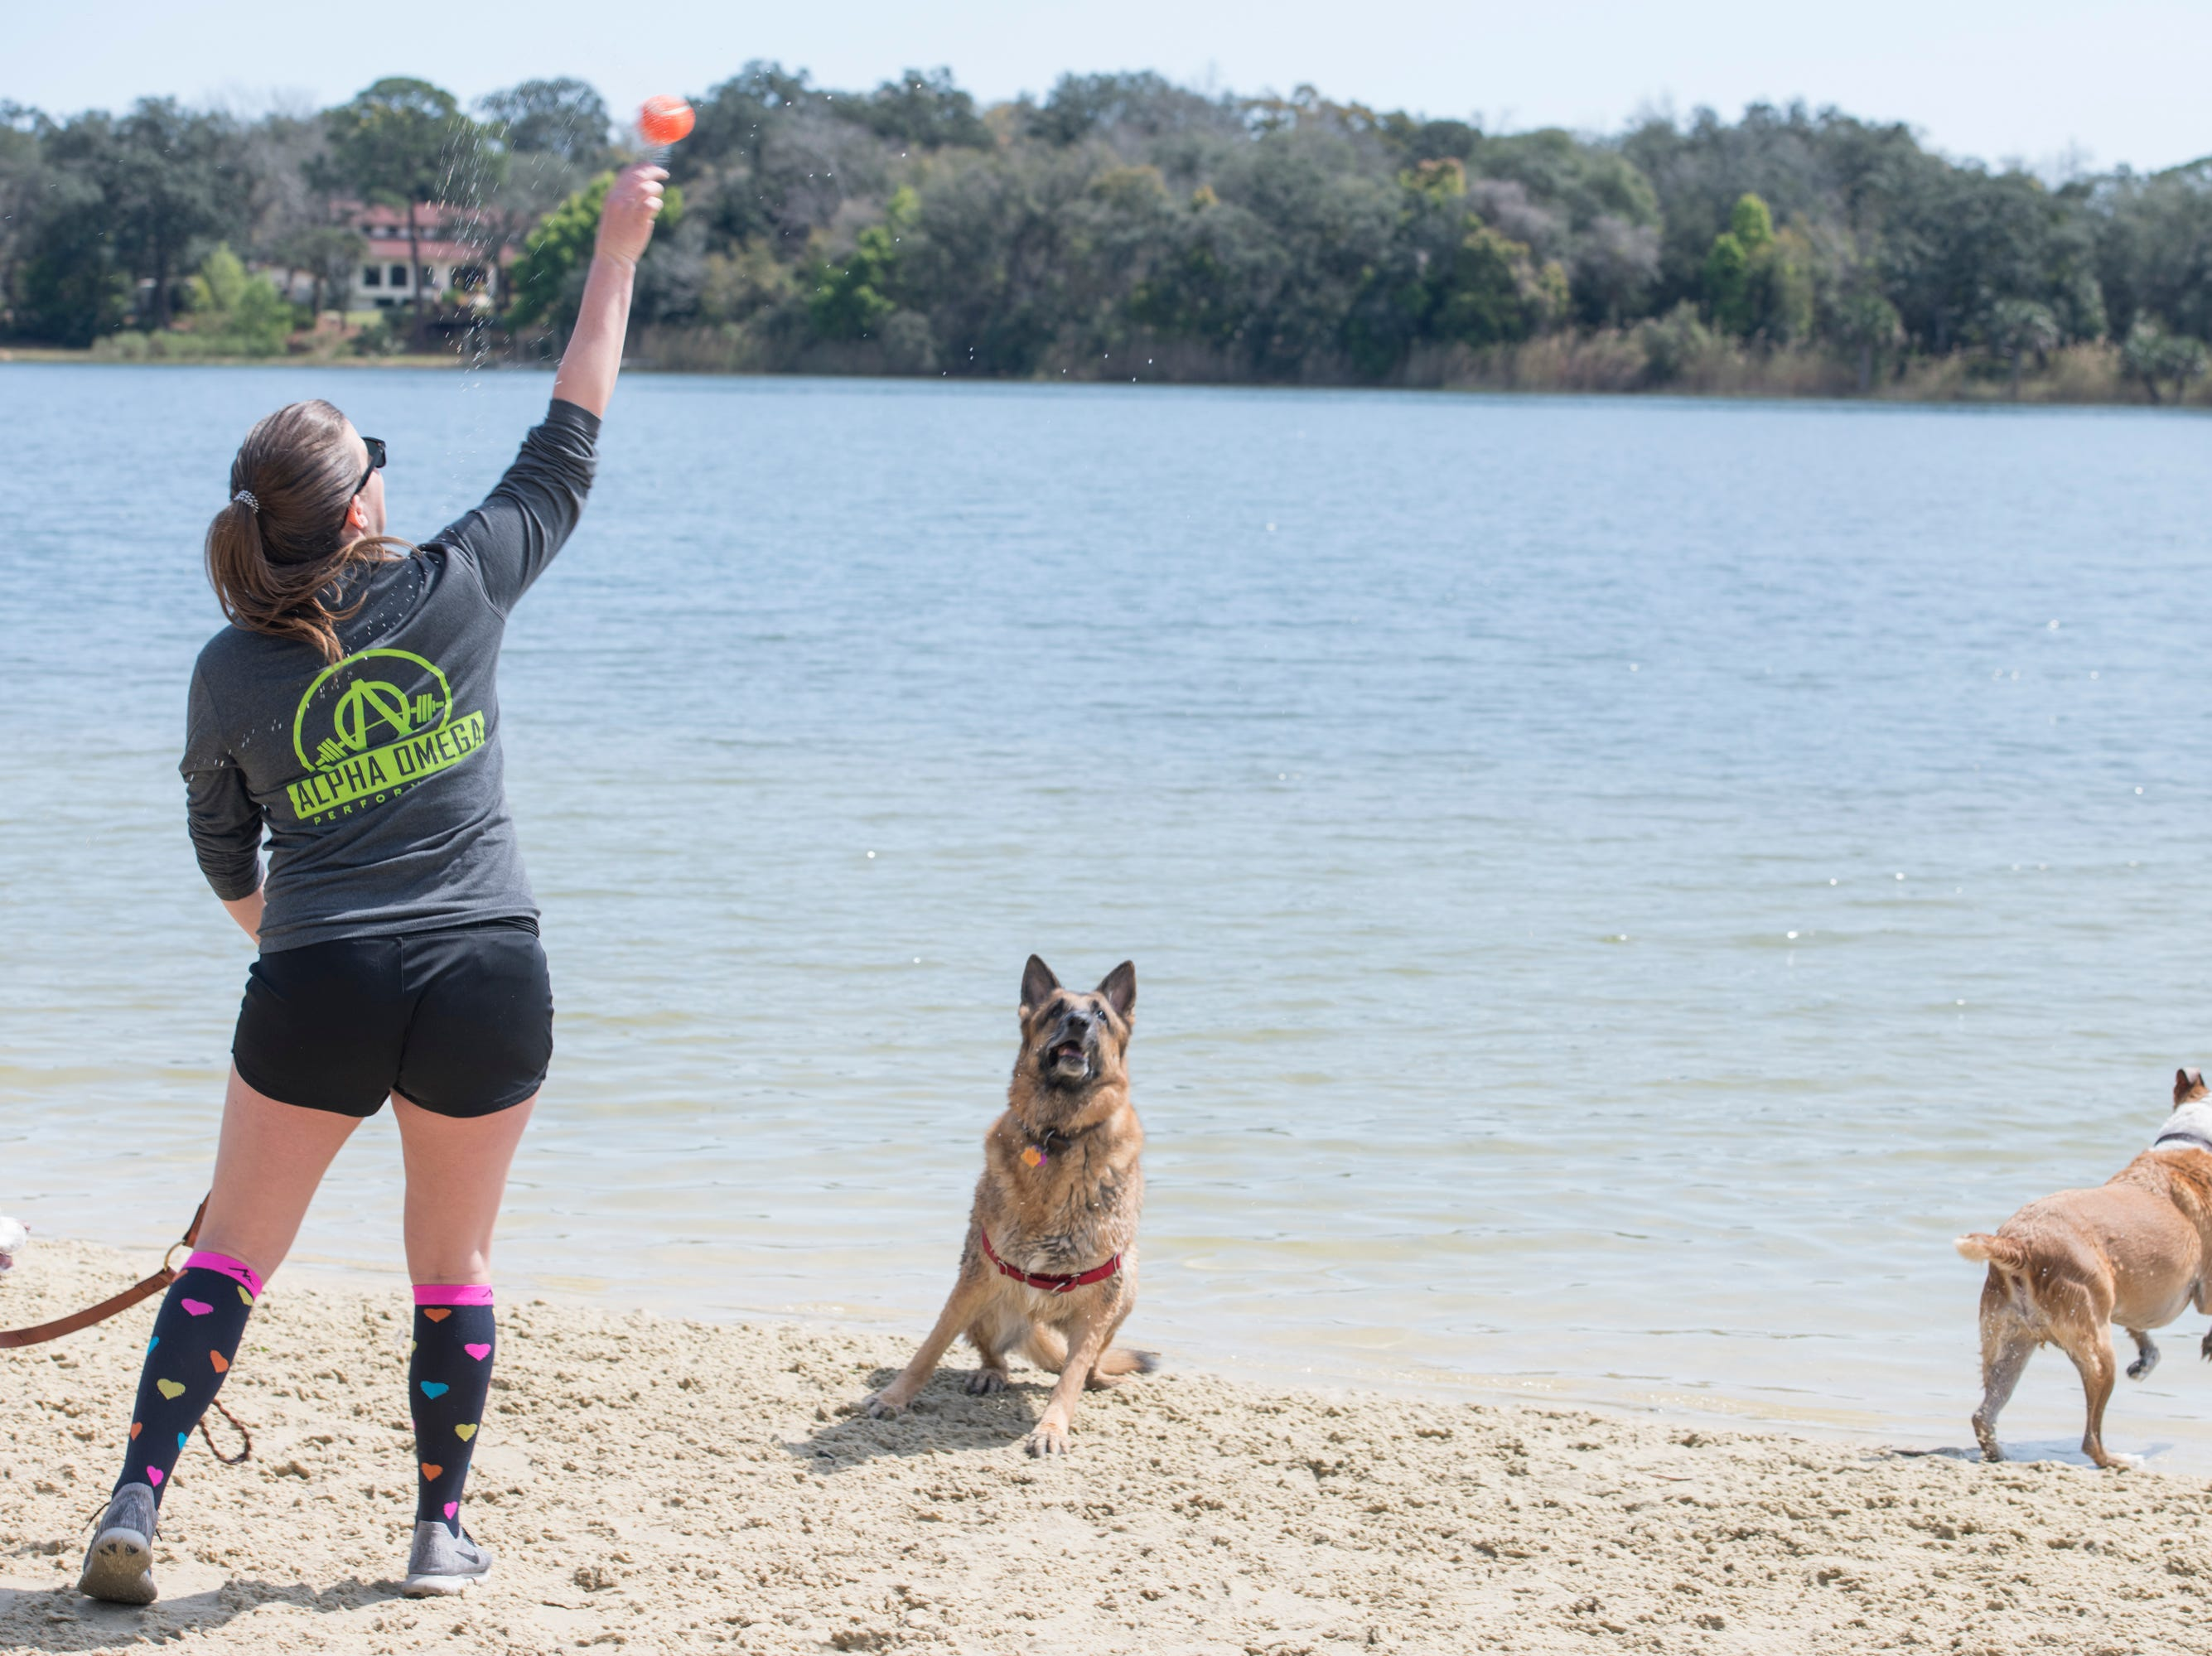 Allie Mink throws a ball for her dog Max, right, and another eager pooch at Bayview Park's dog park in Pensacola on Tuesday, March 12, 2019.  Navarre residents hope to get a similar dog park for their city.